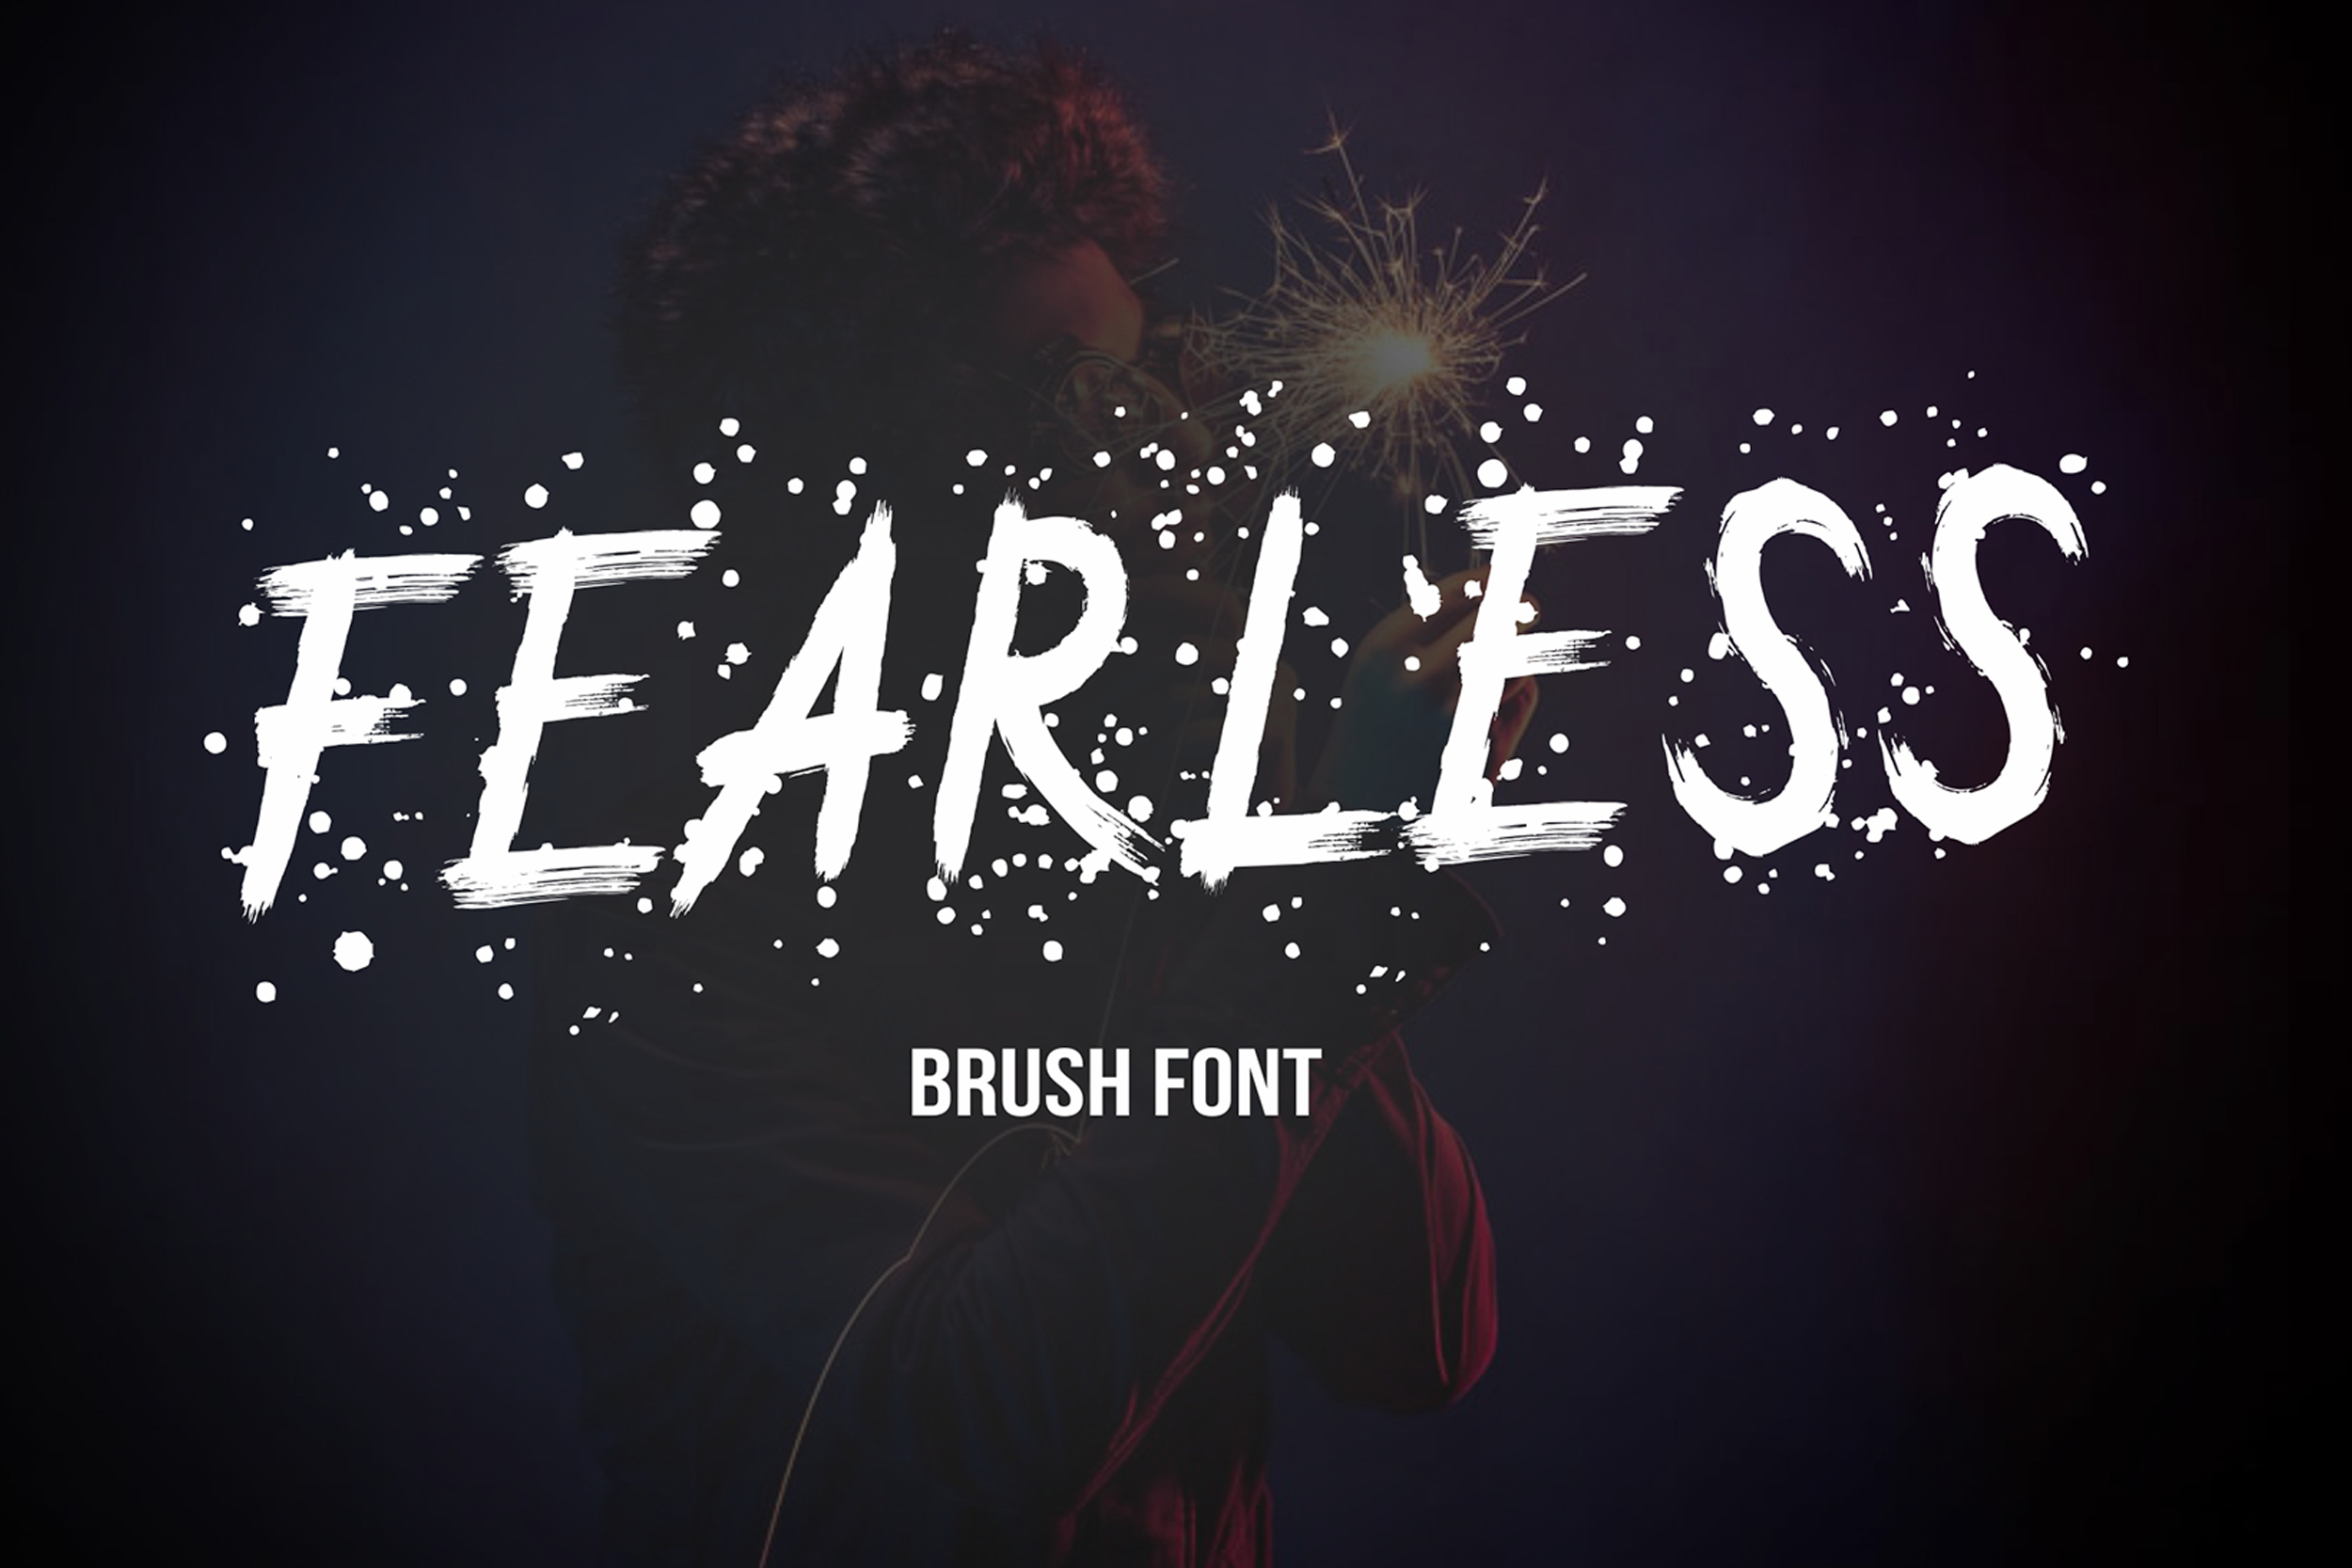 FEARLESS - Brush Font example image 1